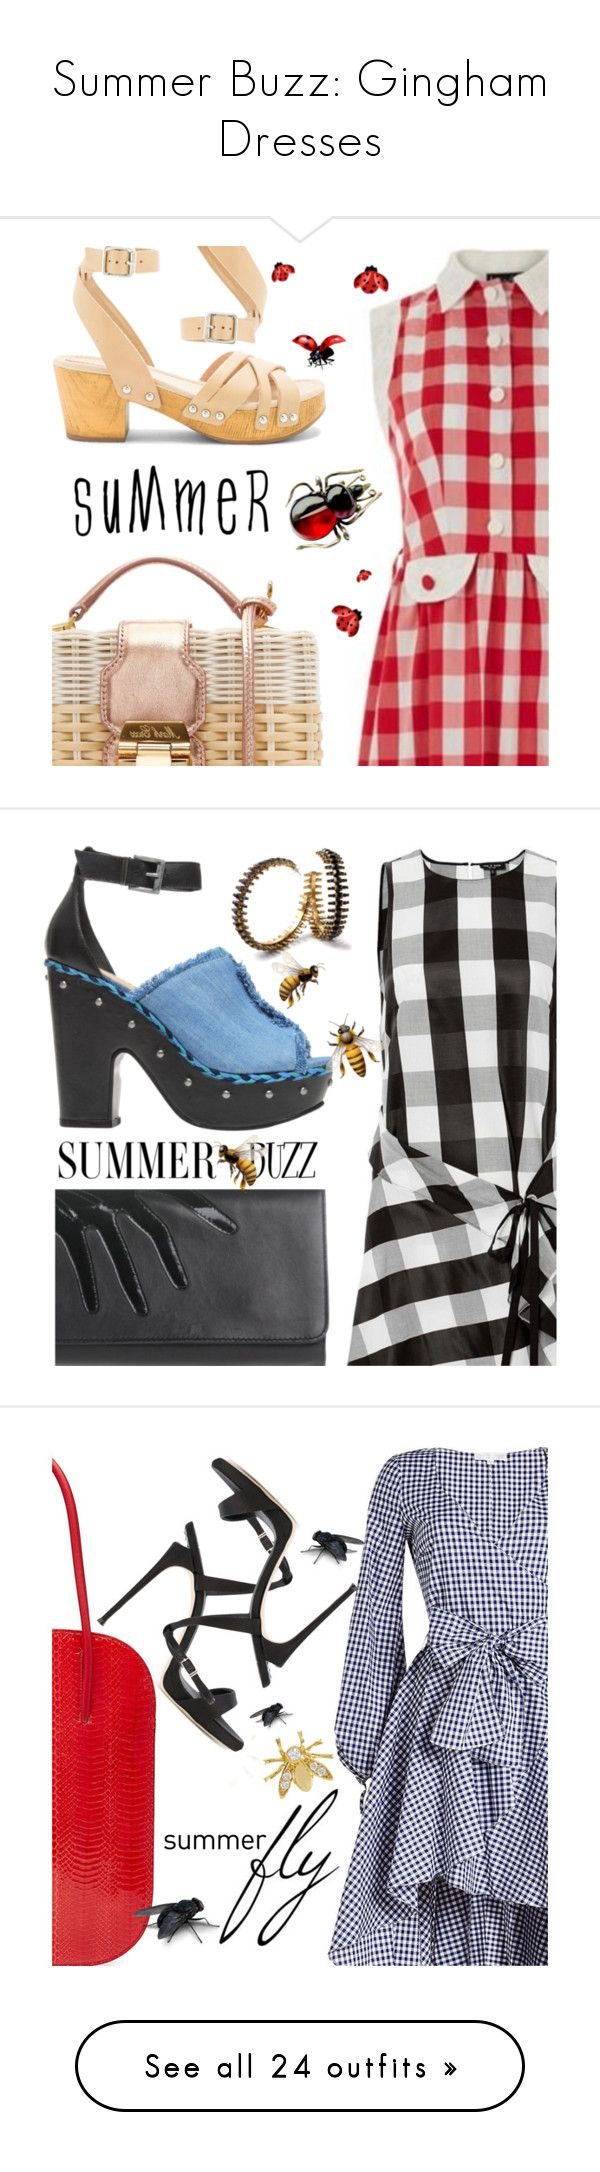 """Summer Buzz: Gingham Dresses"" by sharmarie ❤ liked on Polyvore featuring Mark Cross, Latigo, Lowie, dresses, summer shirt dresses, long shirt dress, button down shirt dress, sleeveless dress, button down dress and rag & bone"